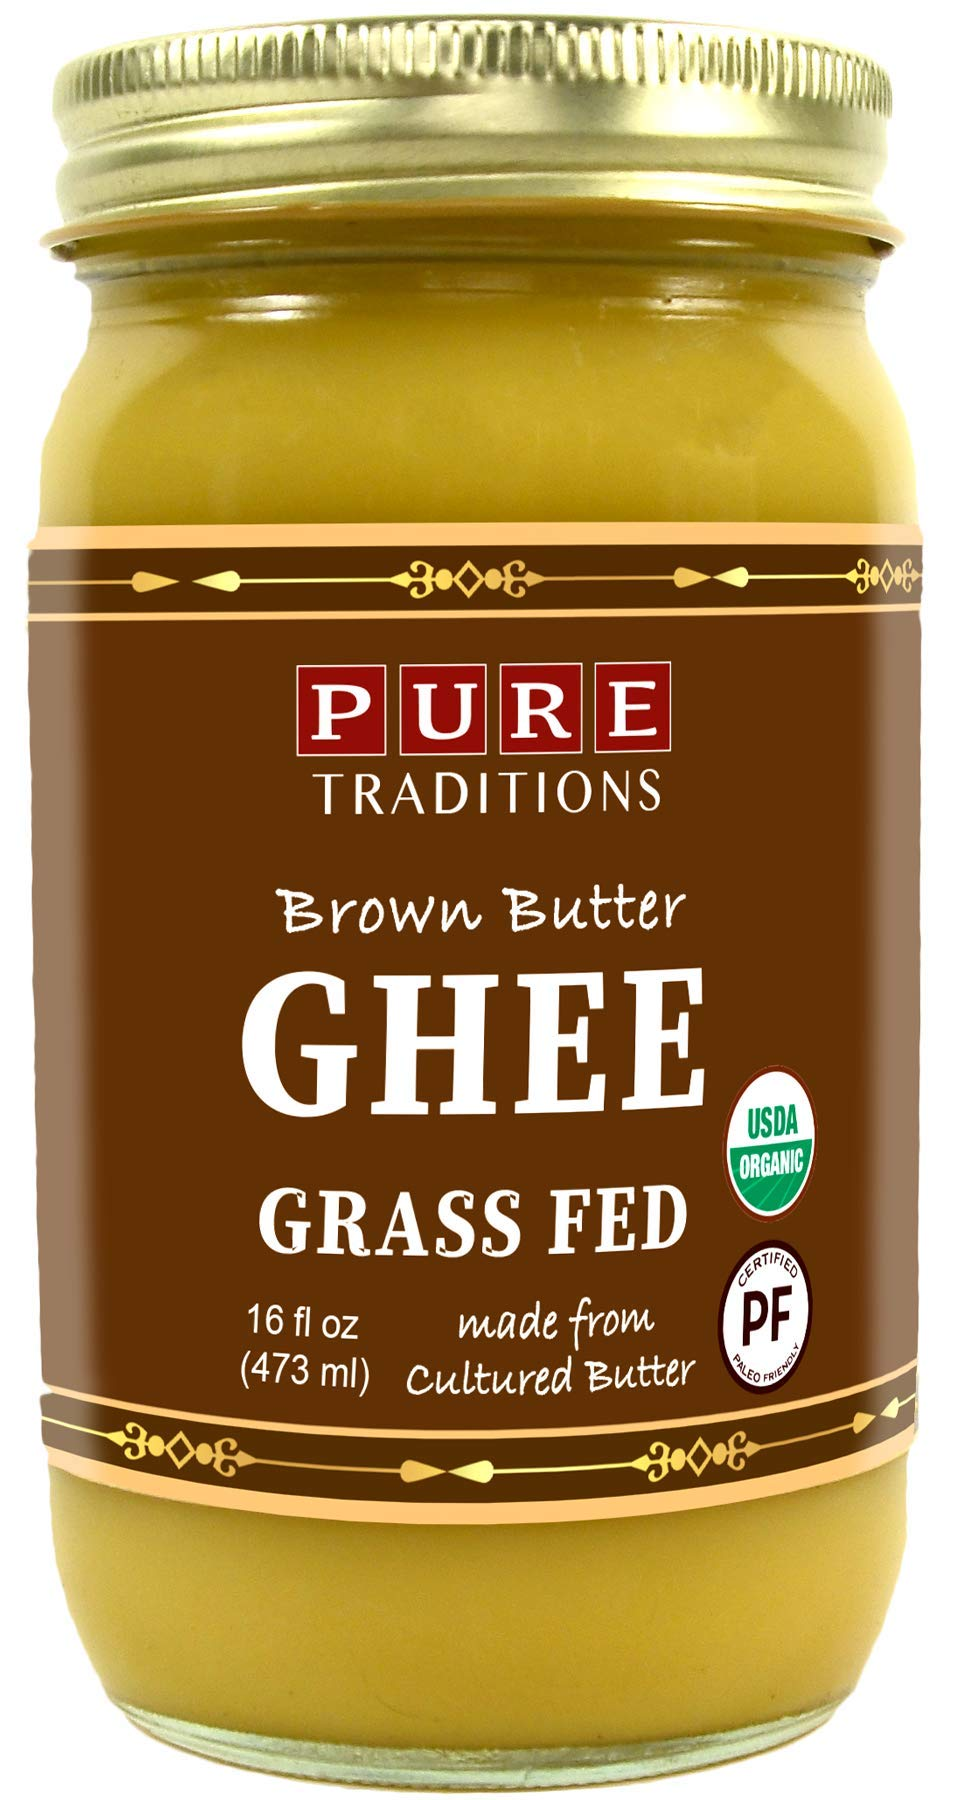 Organic Cultured Brown Butter Ghee, Grass Fed, Casein and Lactose Free (16 oz)